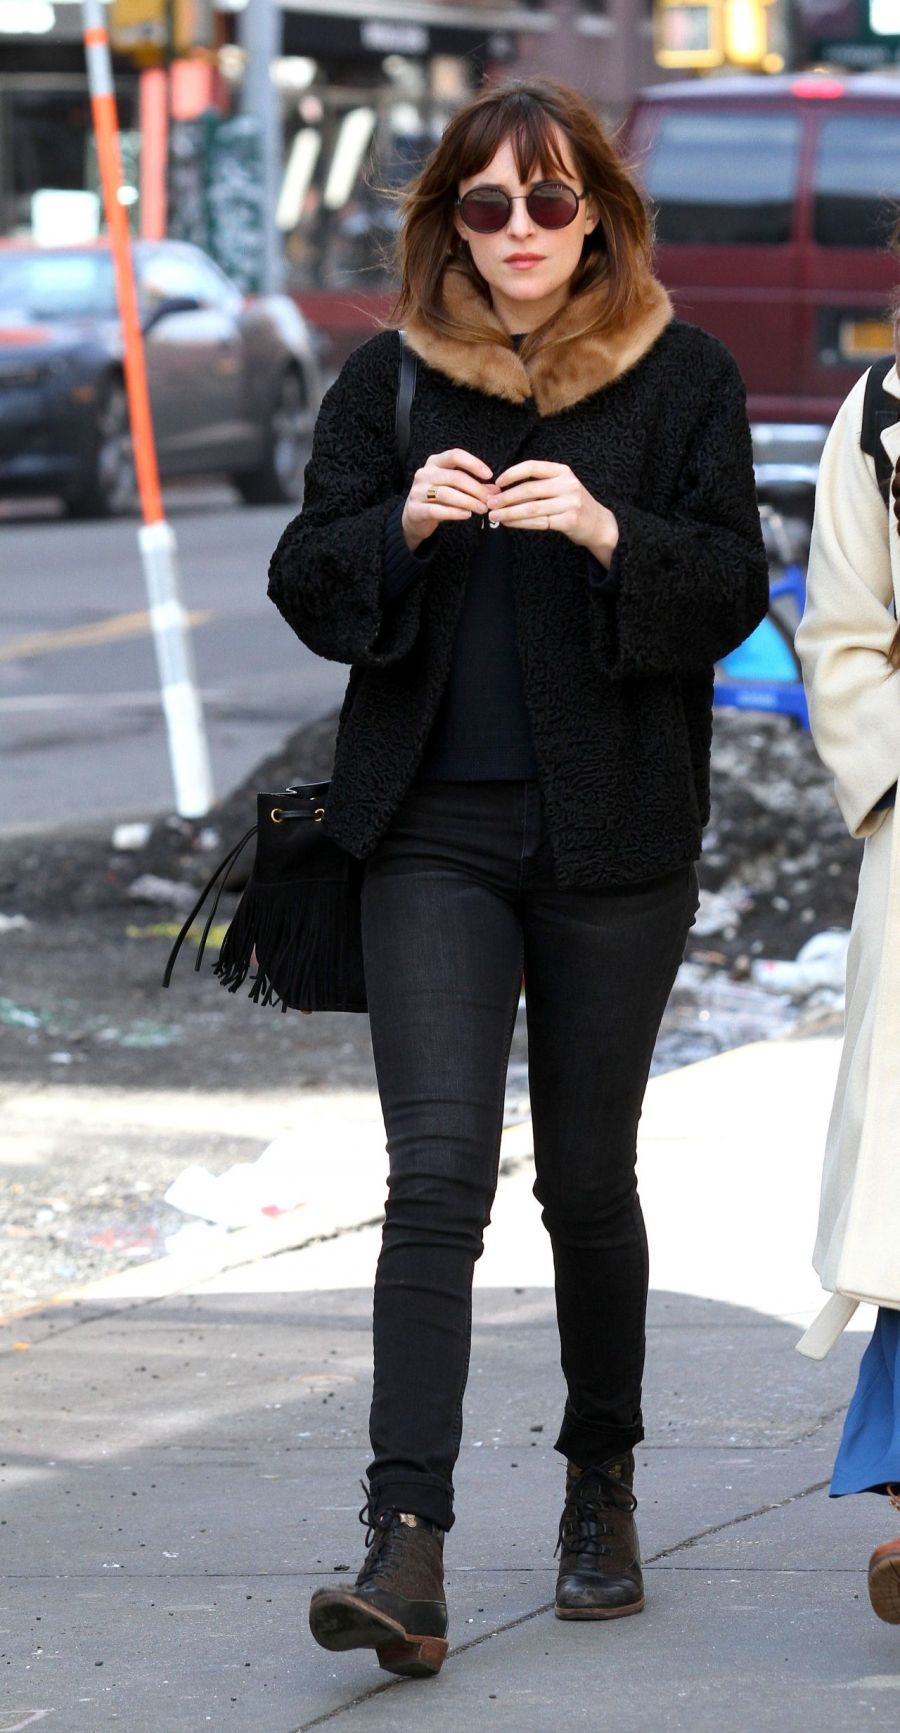 dakota-johnson-street-style-out-in-new-york-city-march-2015_9